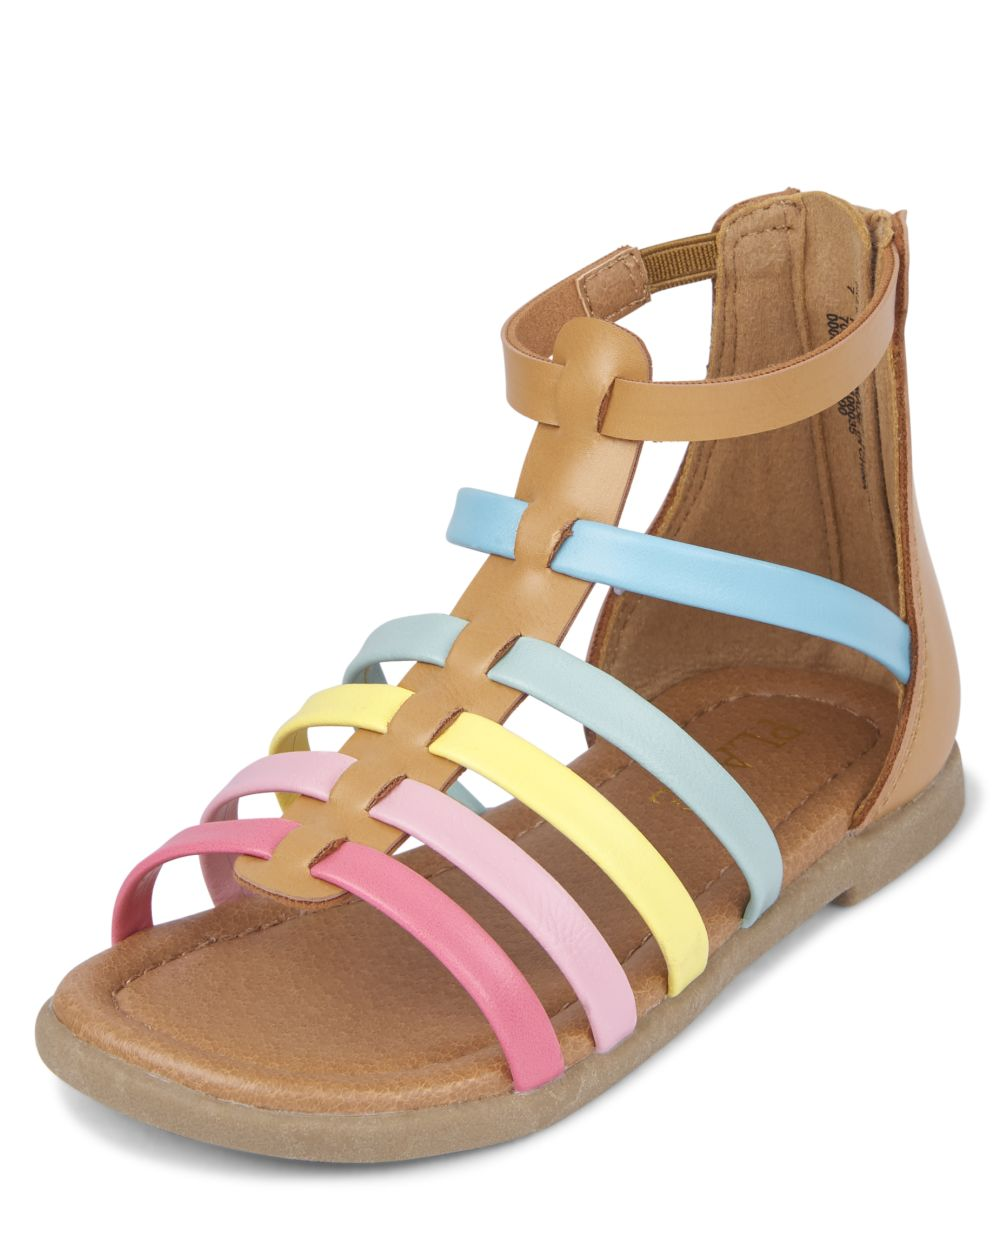 Toddler Rainbow Gladiator Sandals - Multi